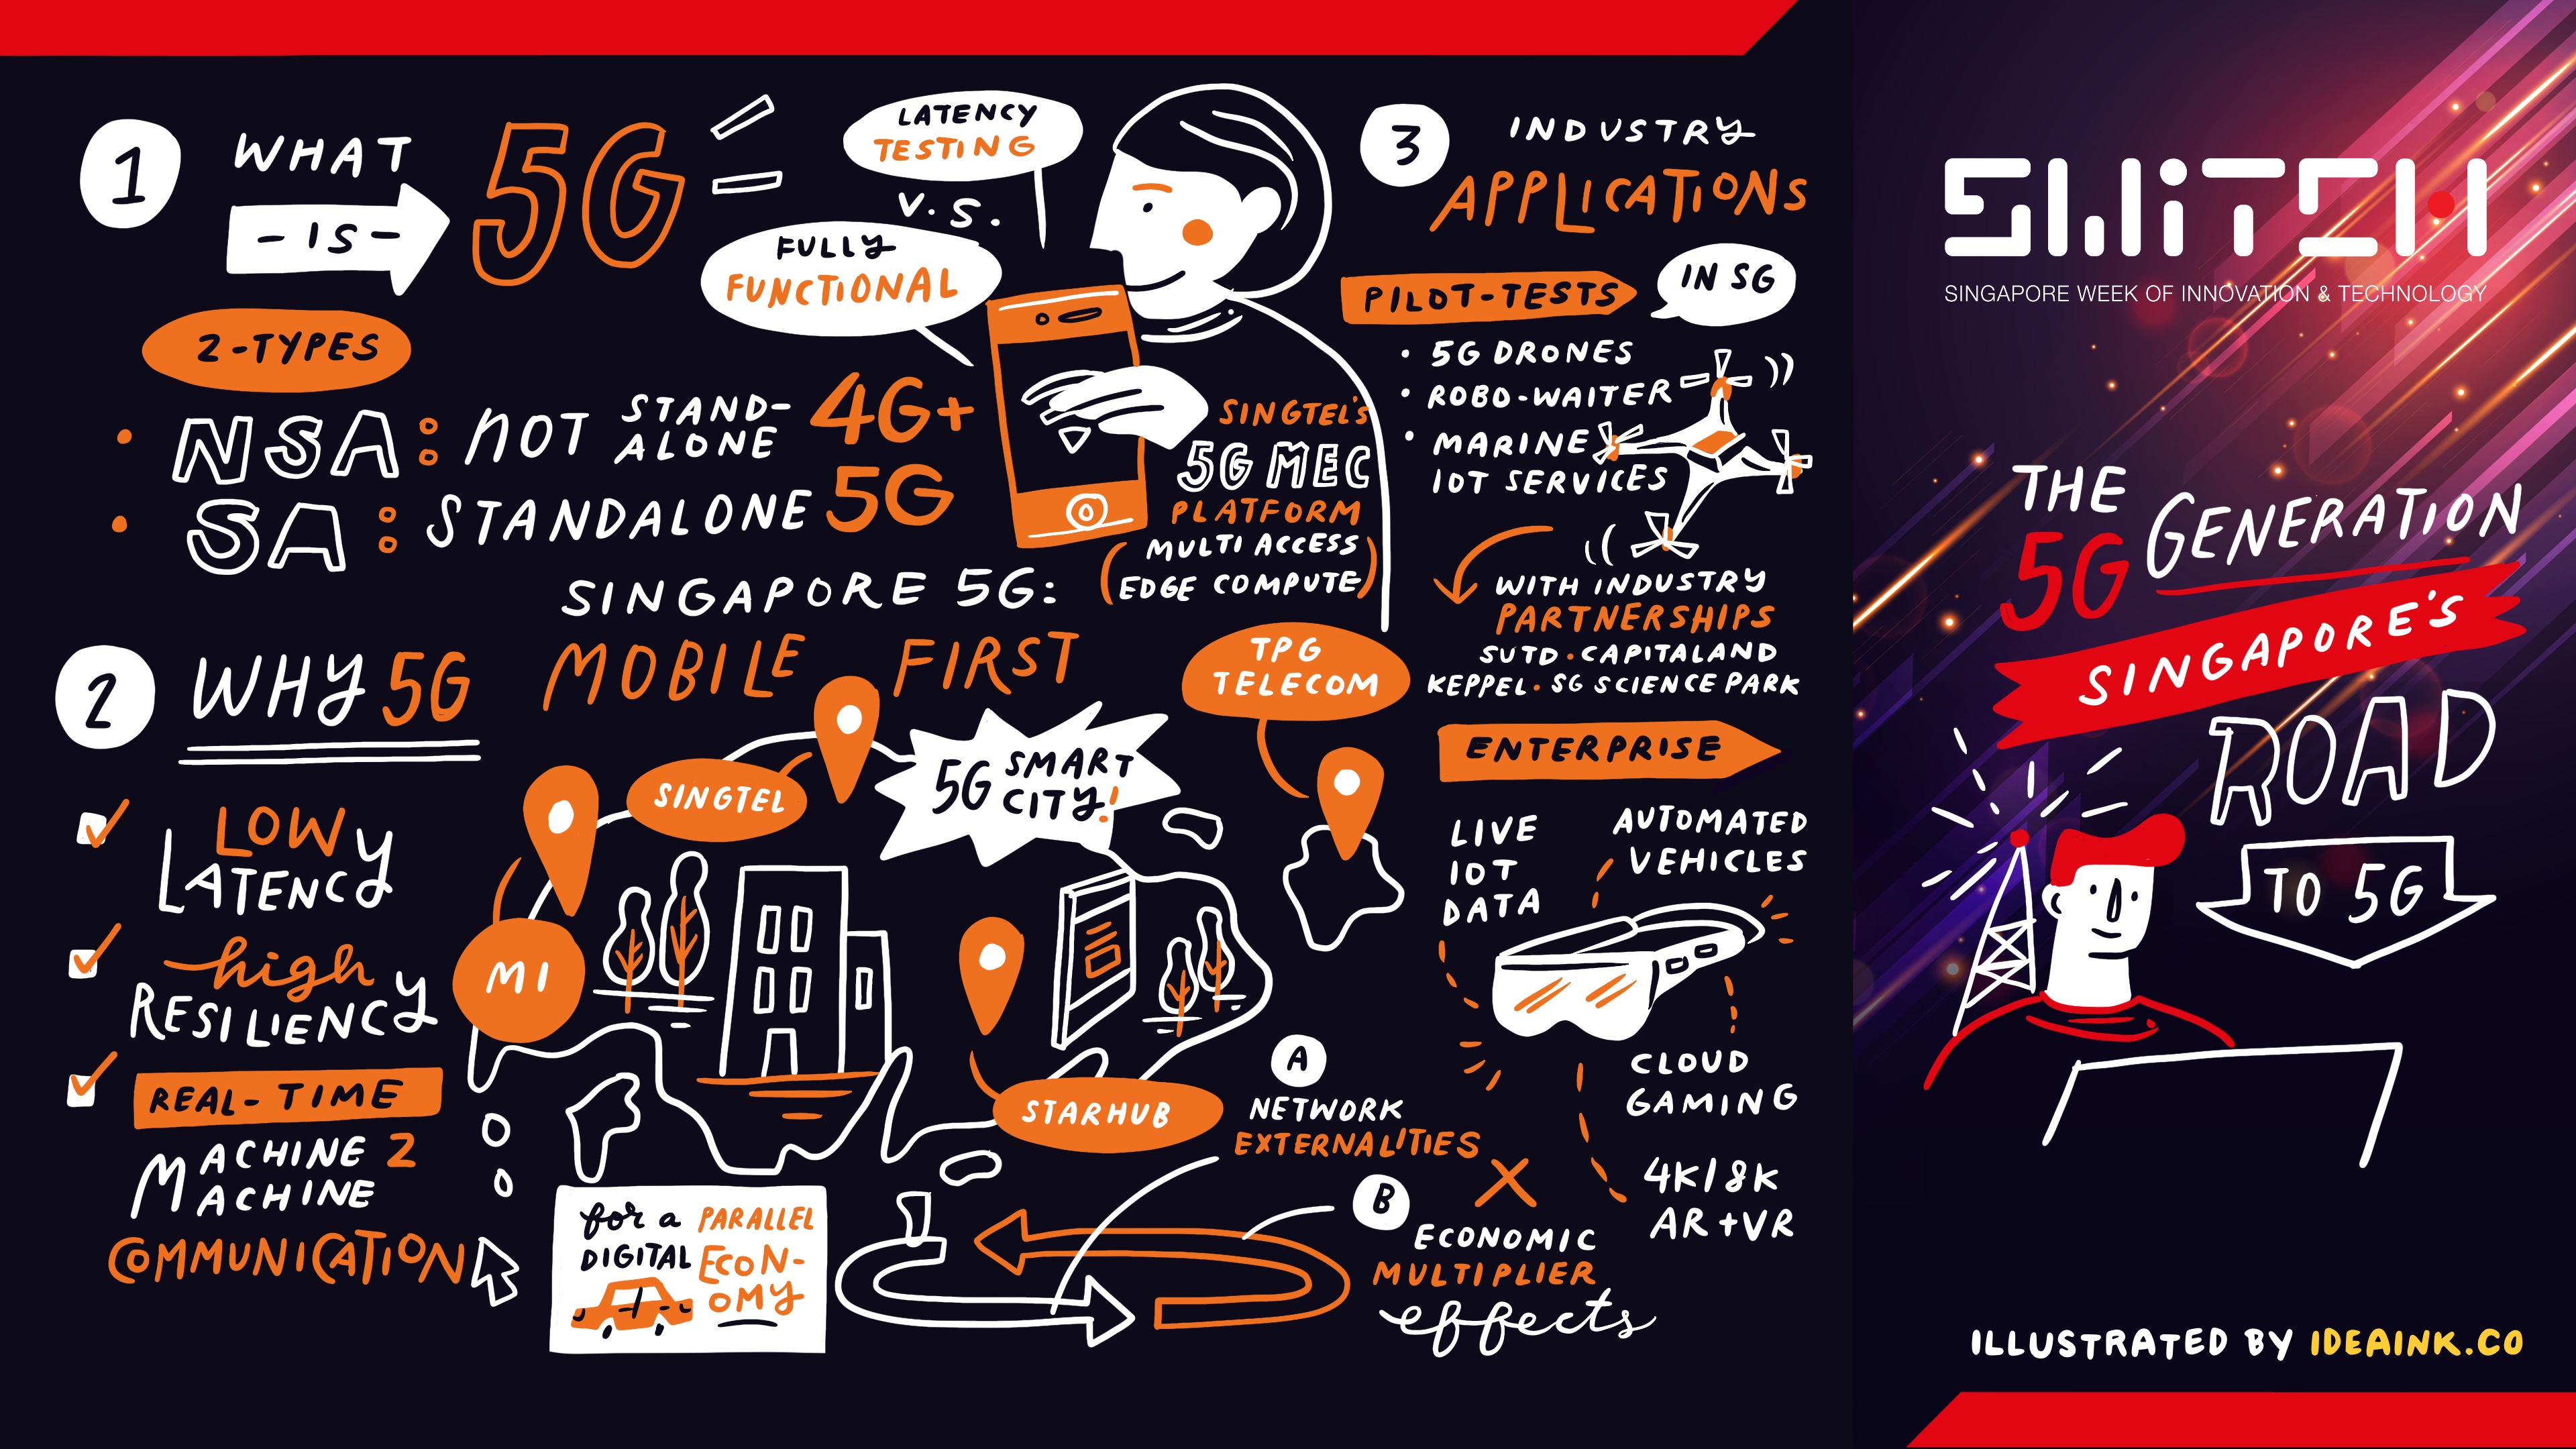 The 5G Generation: Singapore's Road to 5G